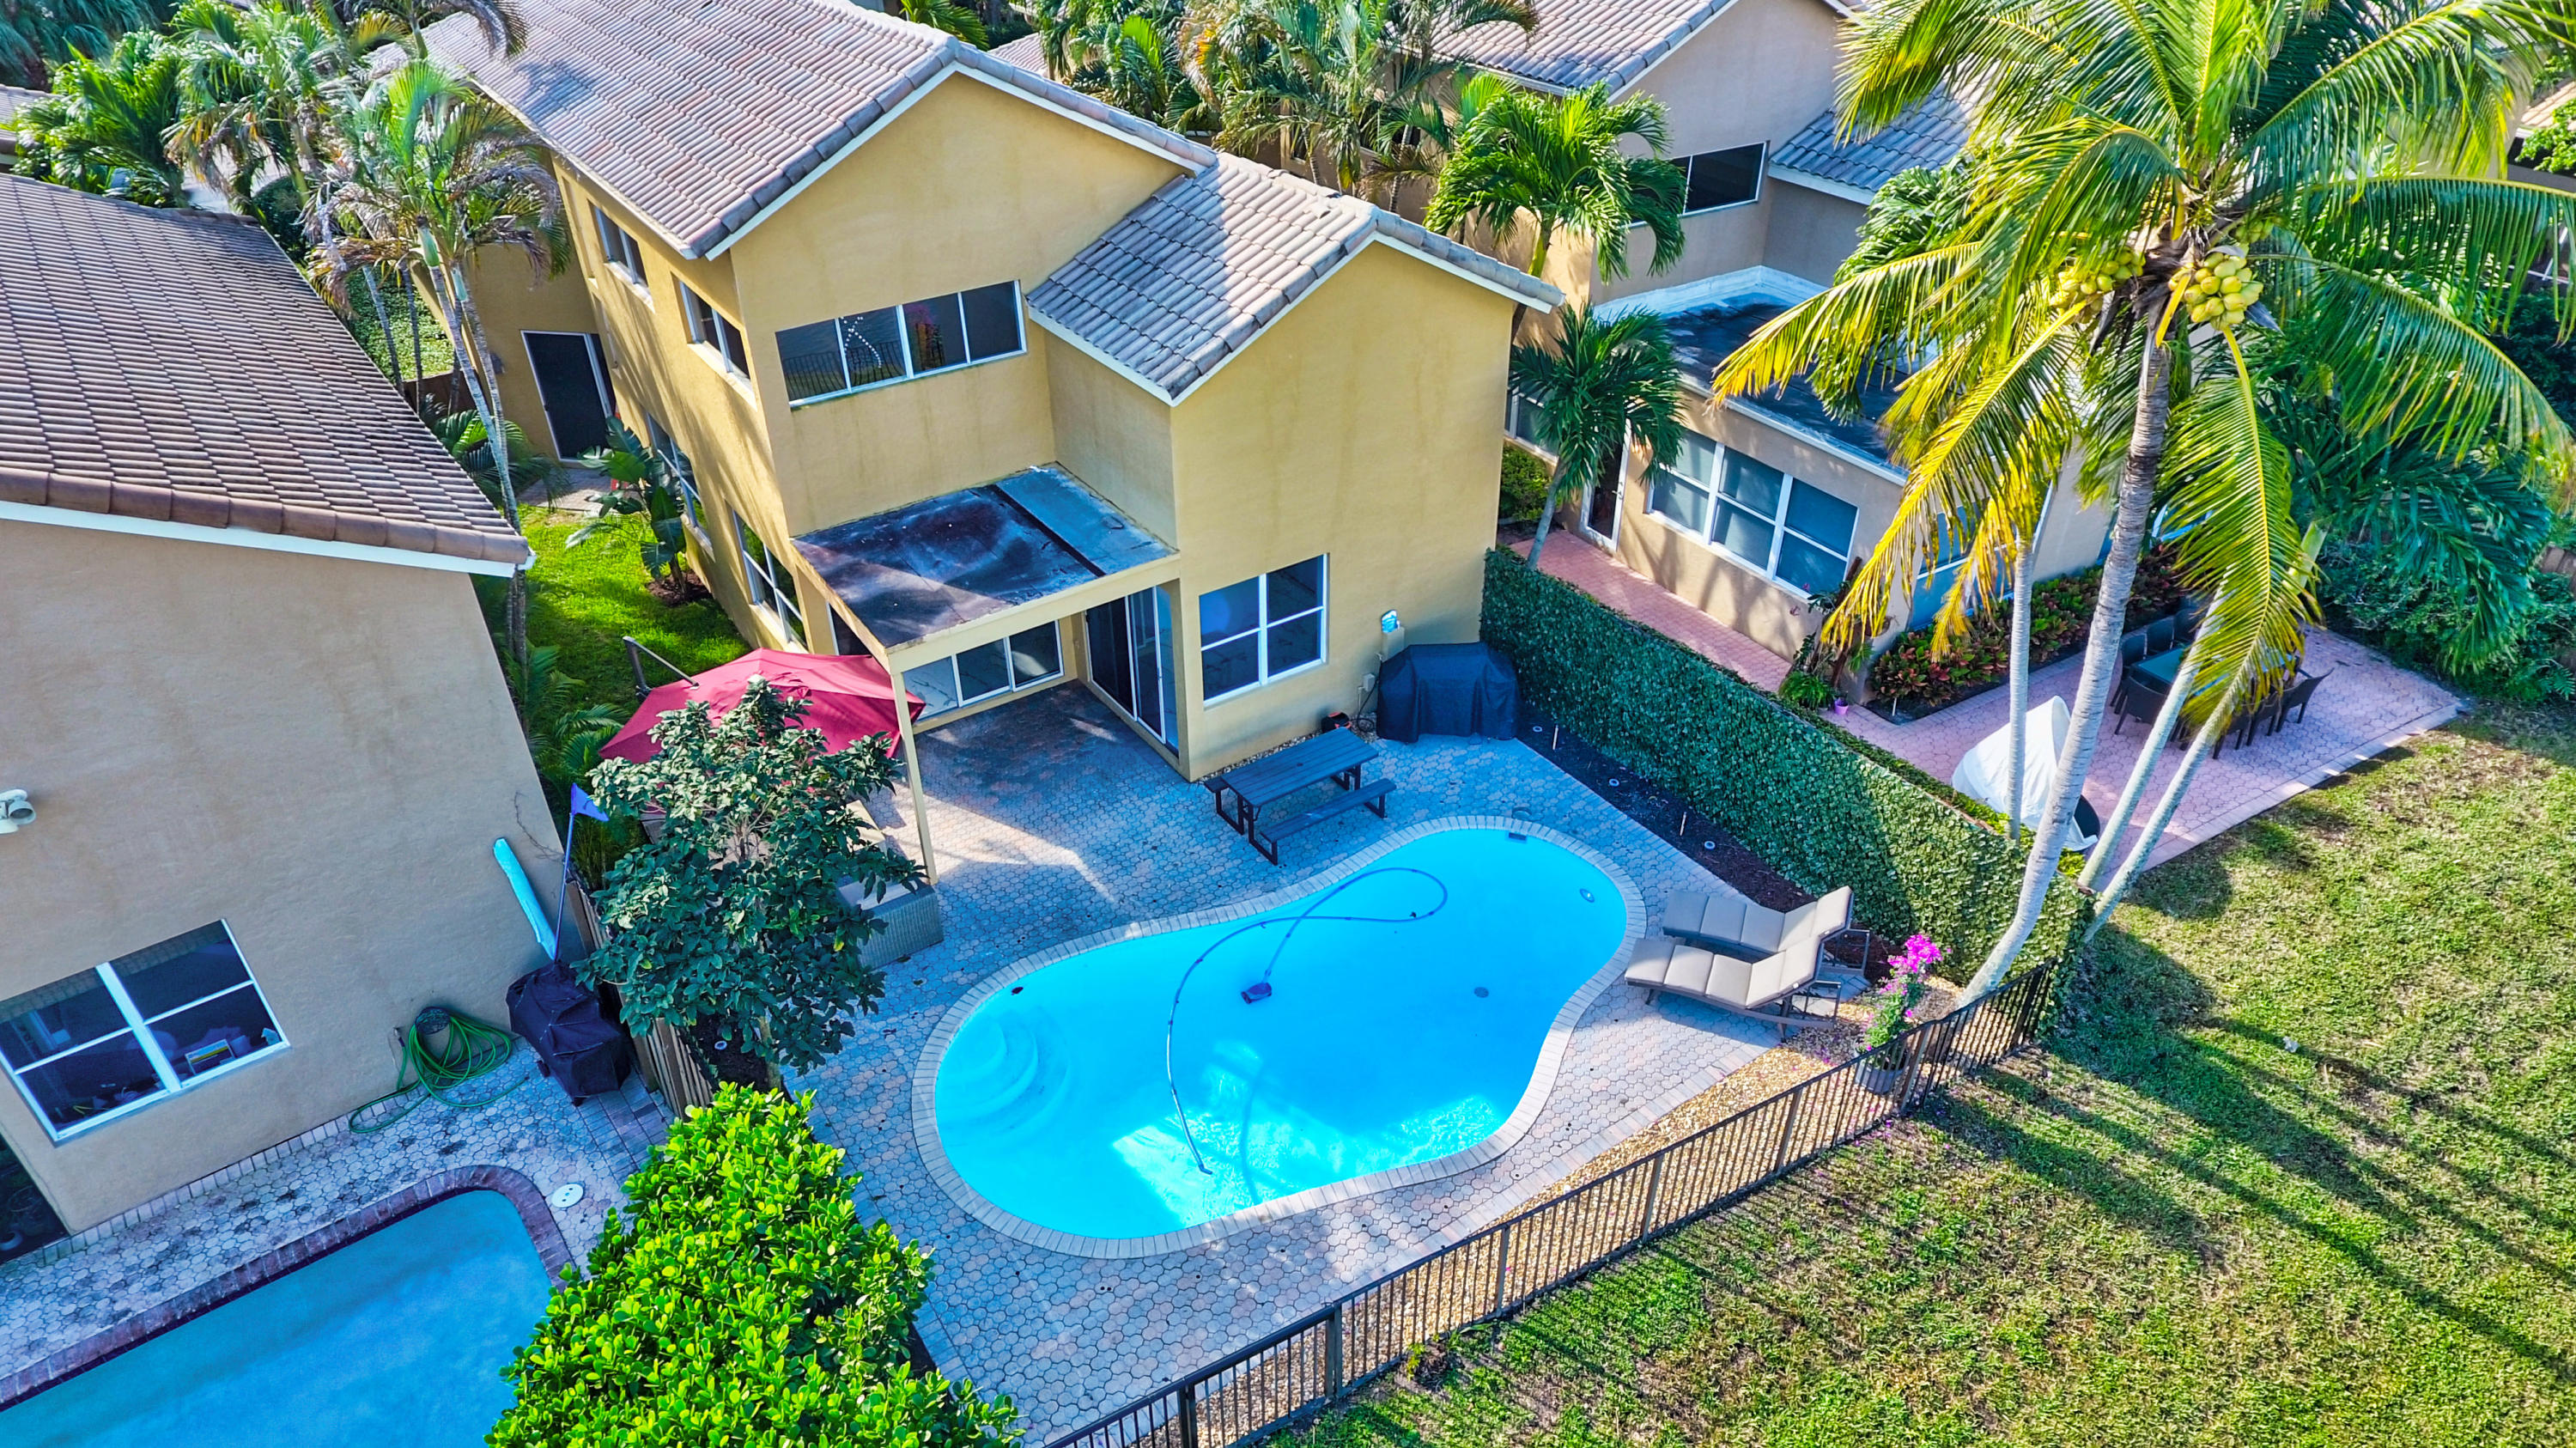 Details for 2483 66th Drive Nw, Boca Raton, FL 33496